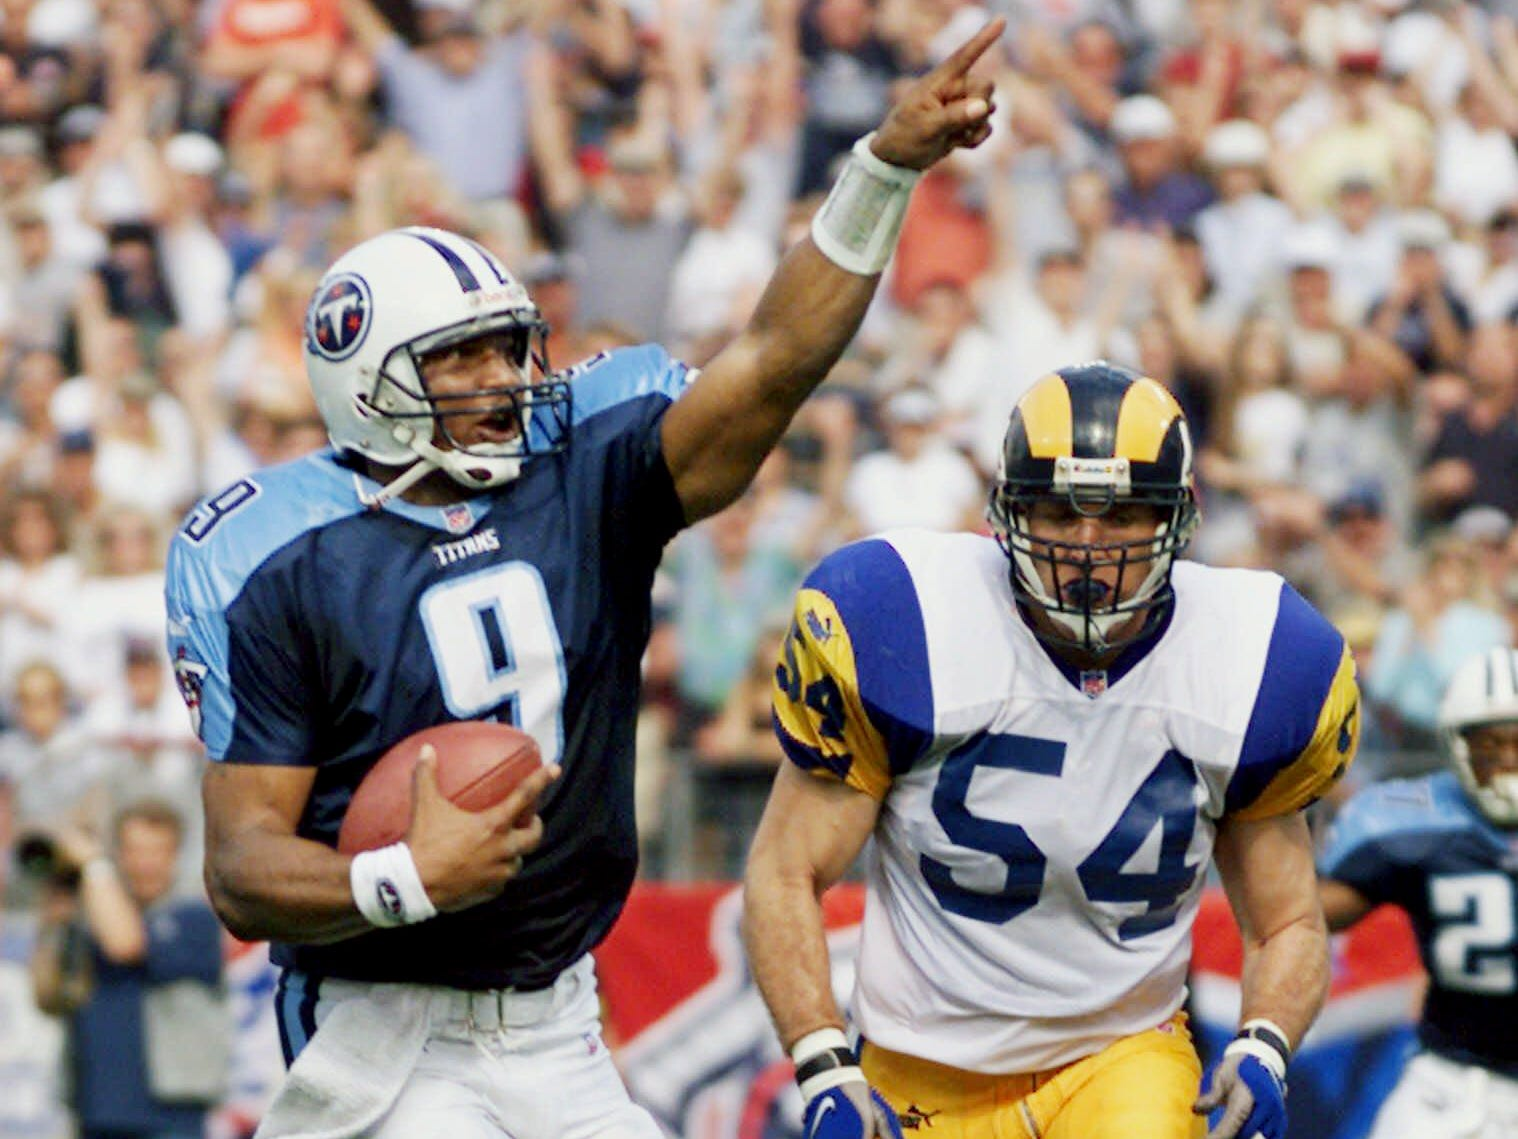 Tennessee Titans quarterback Steve McNair (9) beats St. Louis Rams linebacker Todd Collins (54) to the end zone as McNair scores a touchdown on a 10-yard-run in the first quarter Oct. 31, 1999 in Nashville. McNair is making his first start with the Titans since undergoing back surgery after the season-opening game.